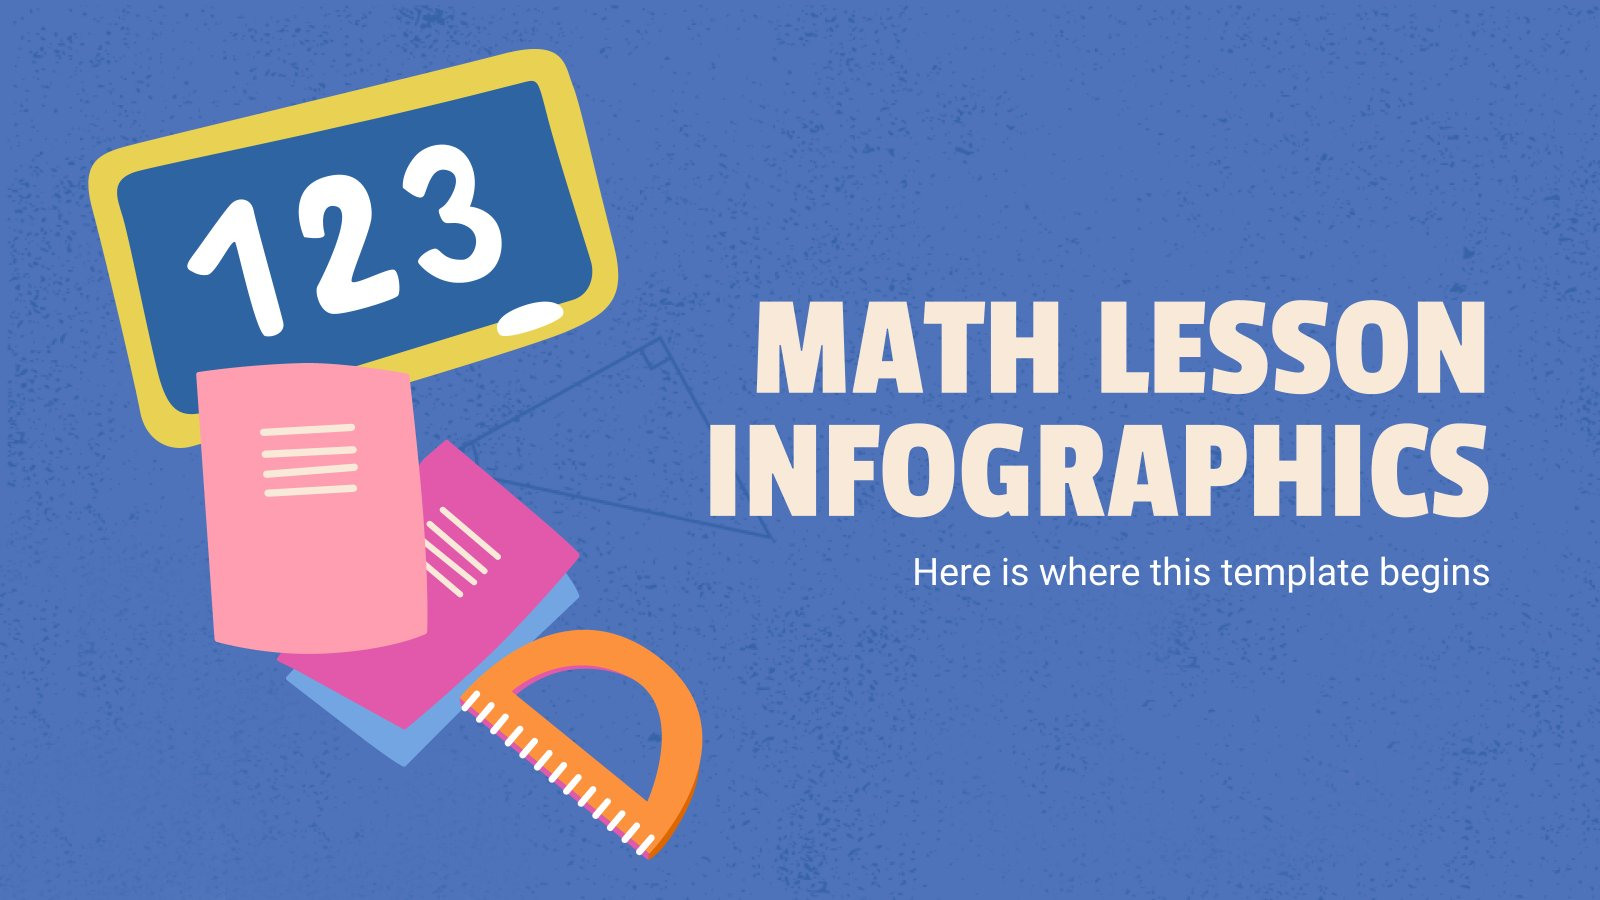 Math Lesson Infographics presentation template